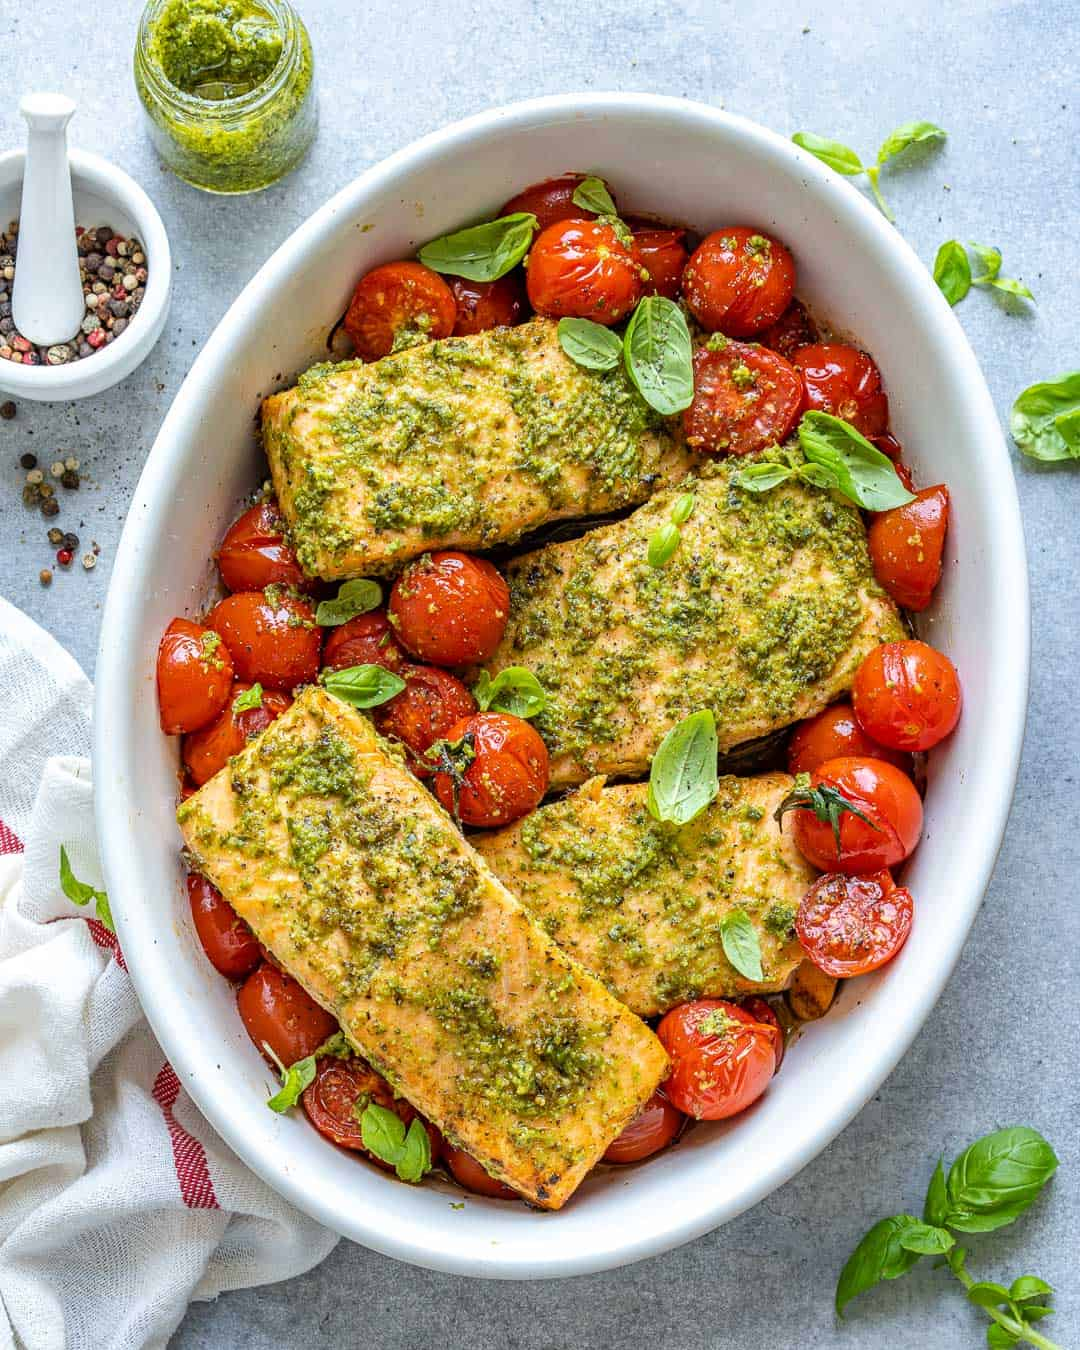 Full baking dish of salmon fillets and cherry tomatoes after baking